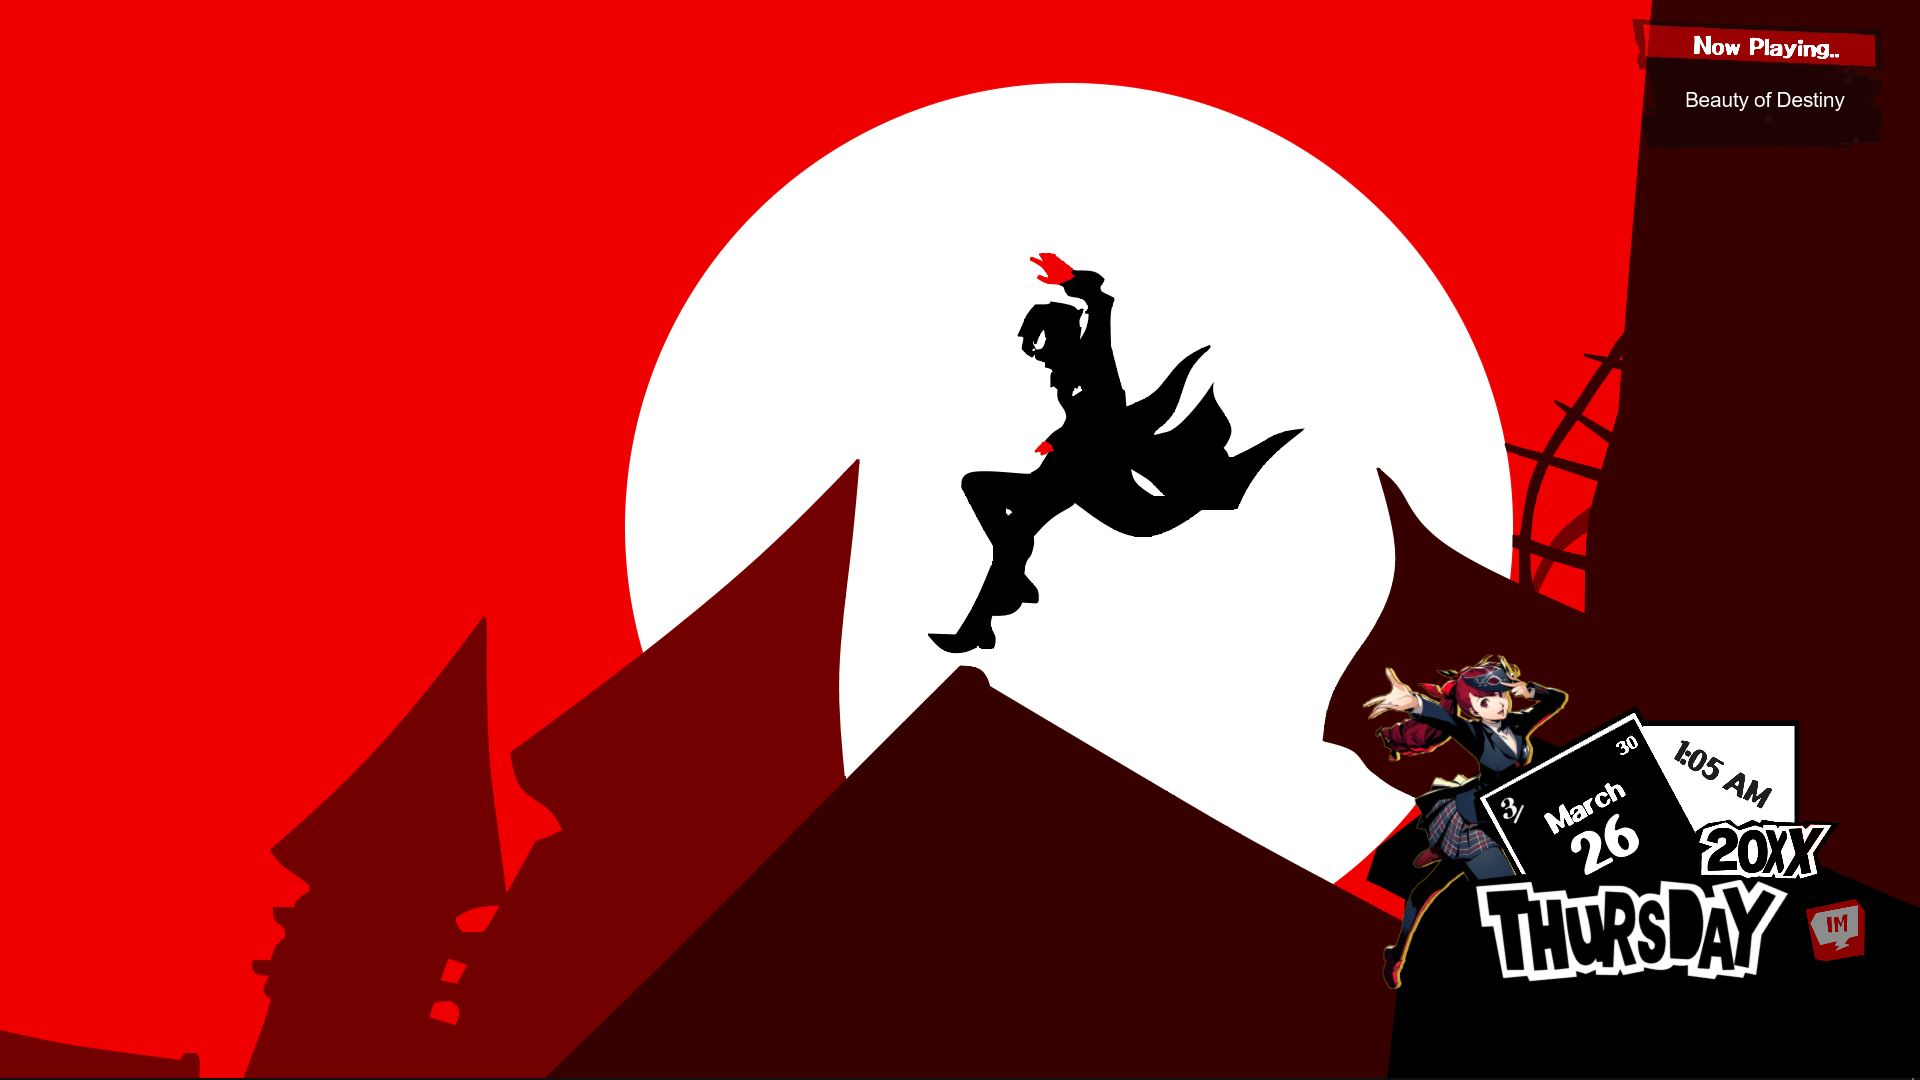 Steam Workshop Persona 5 Dynamic Wallpaper